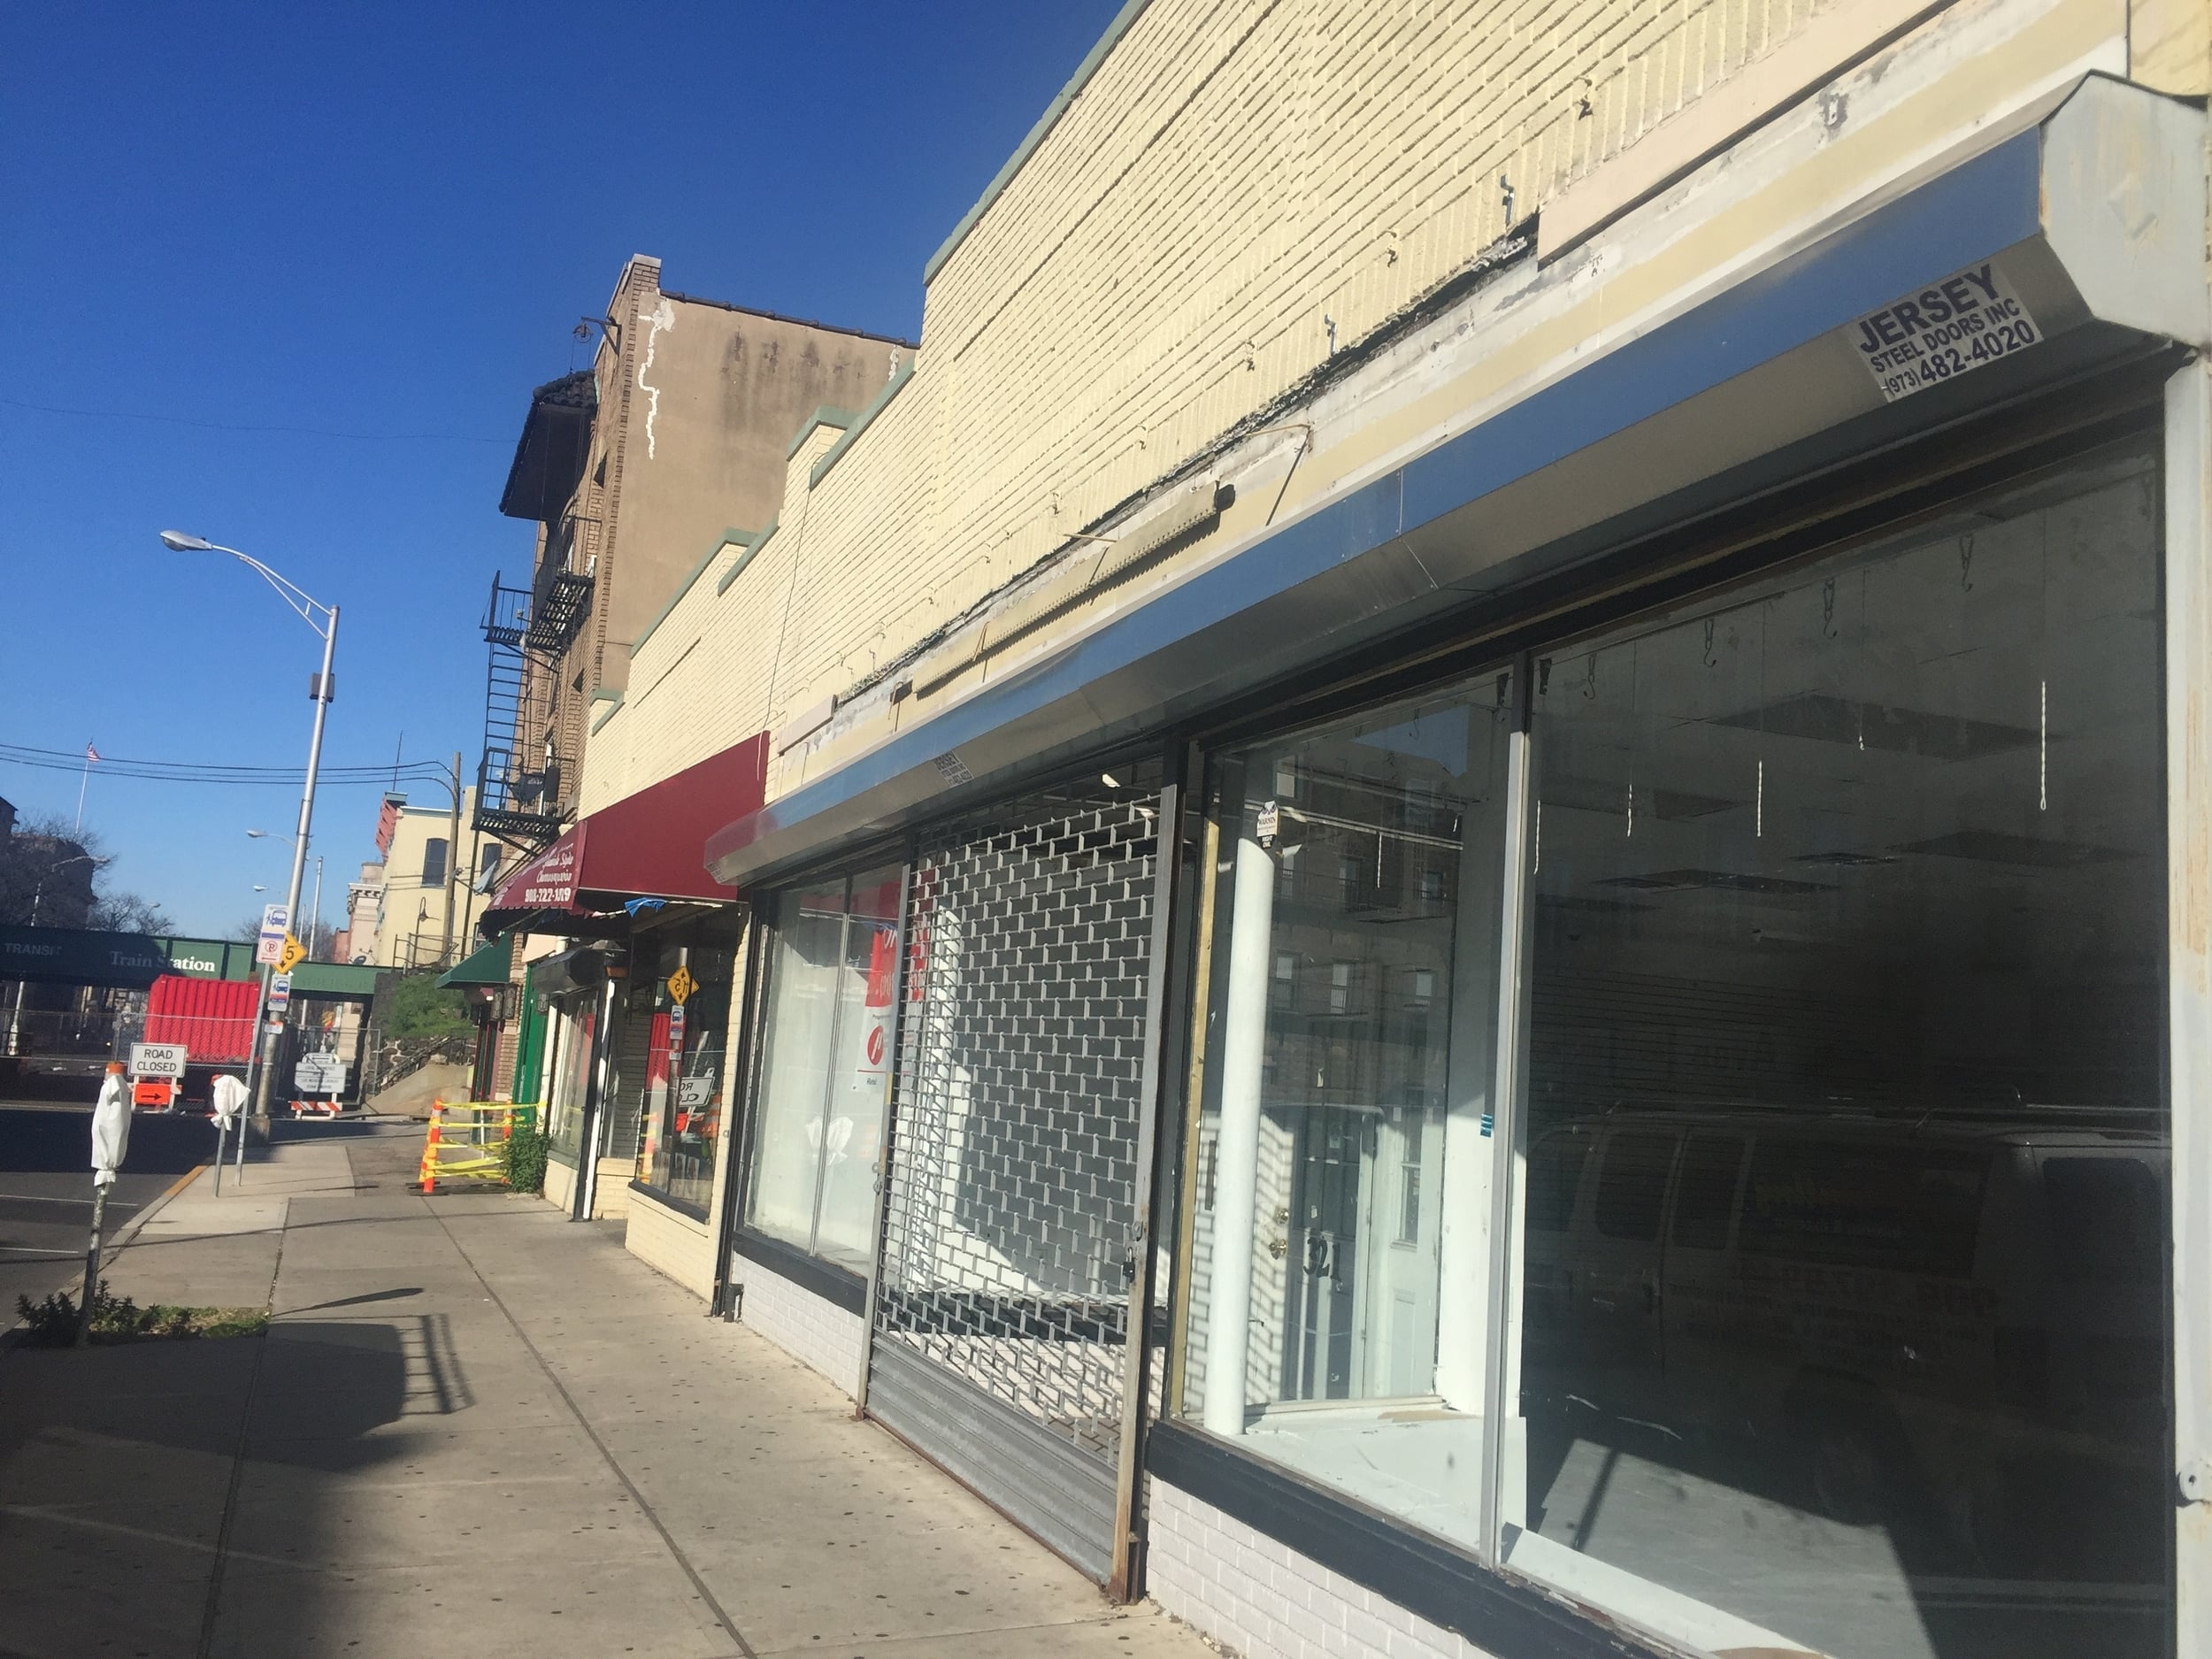 Remove the metal grills!  Metal grilles over the windows and doors of your storefront detracts from its attractiveness and can make an area appear dangerous and unappealing.